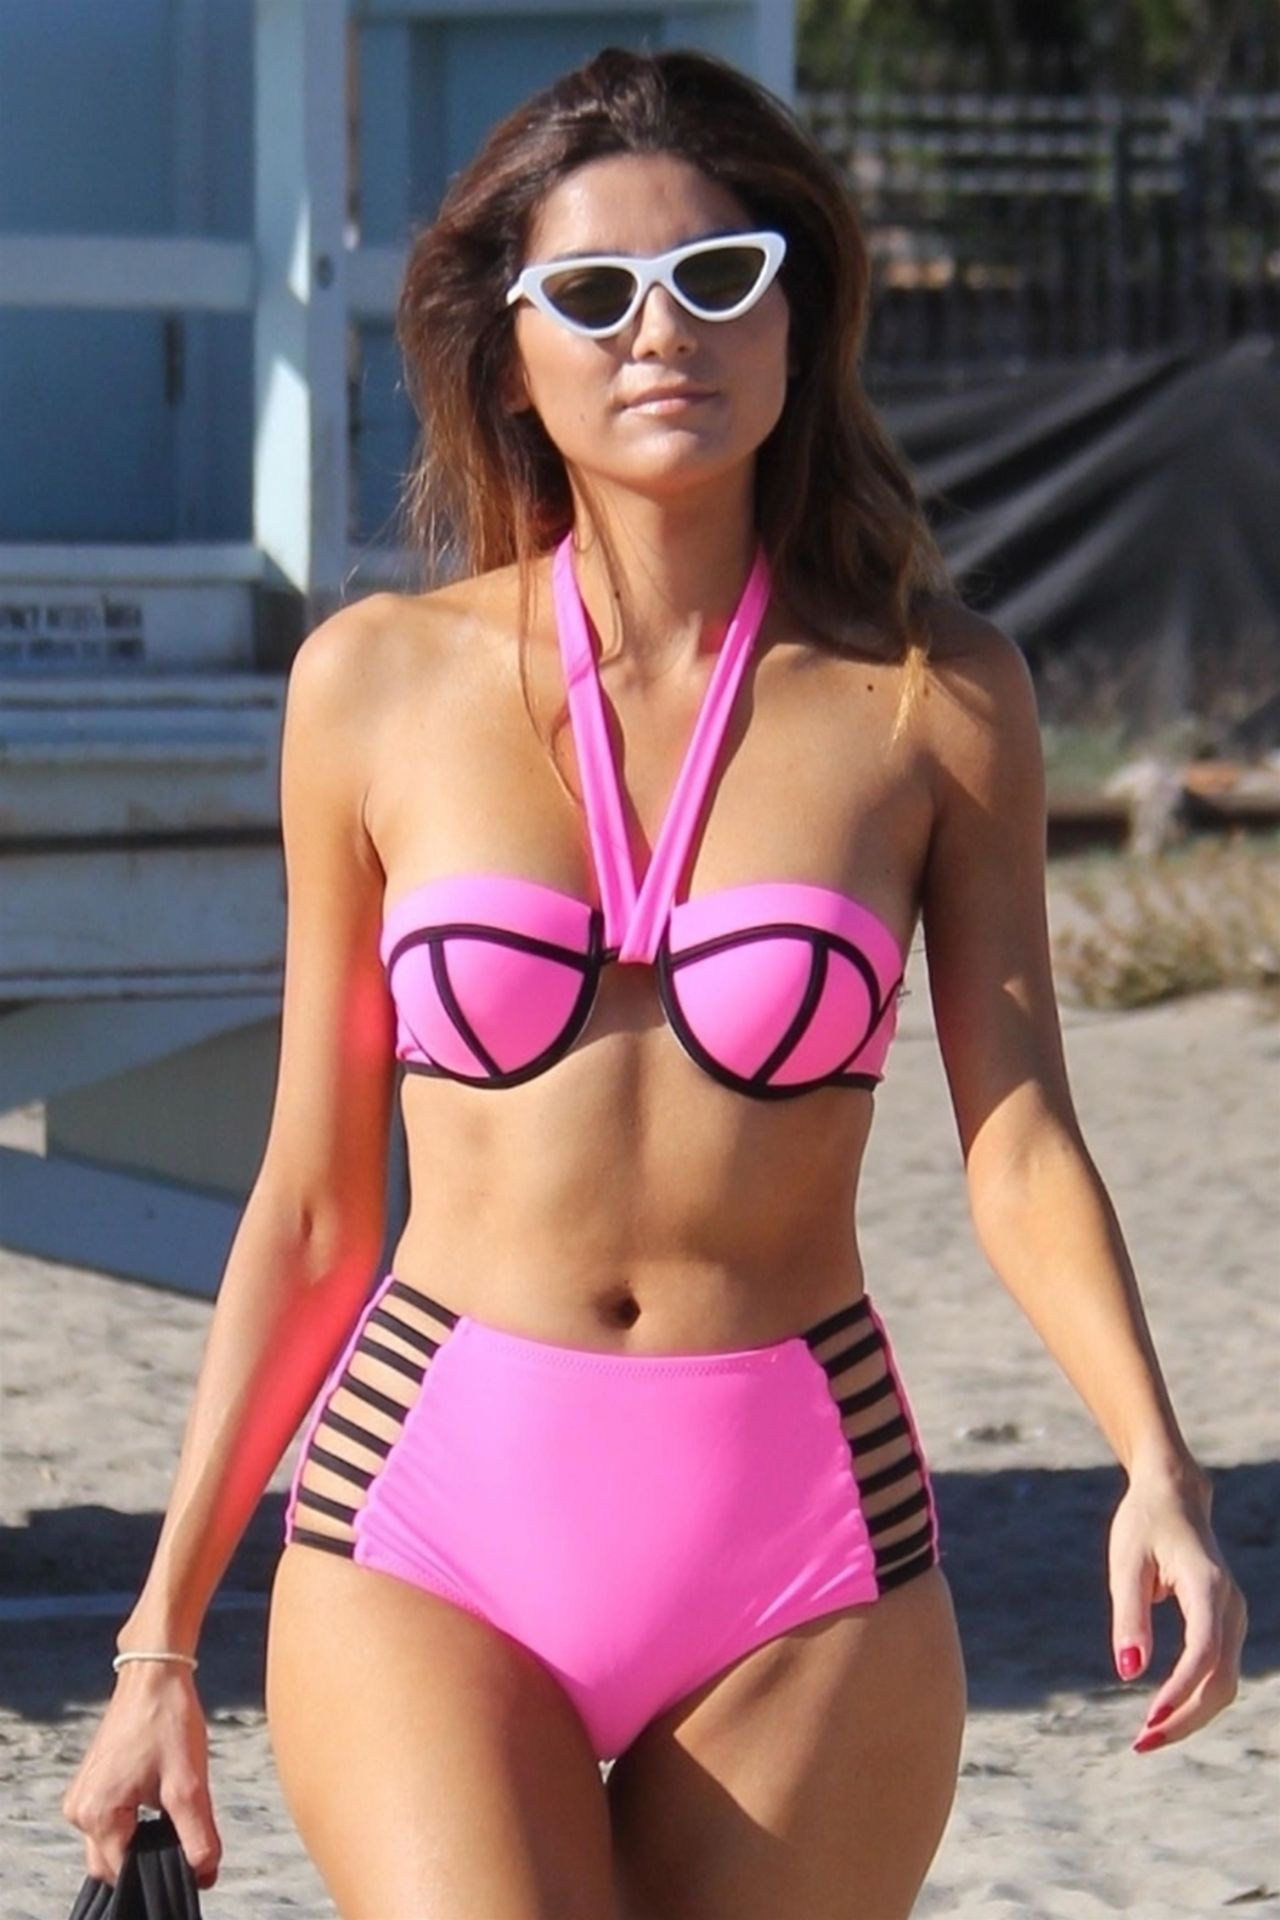 Blanca Blanco in Pink Bikini at the beach in Malibu Pic 31 of 35